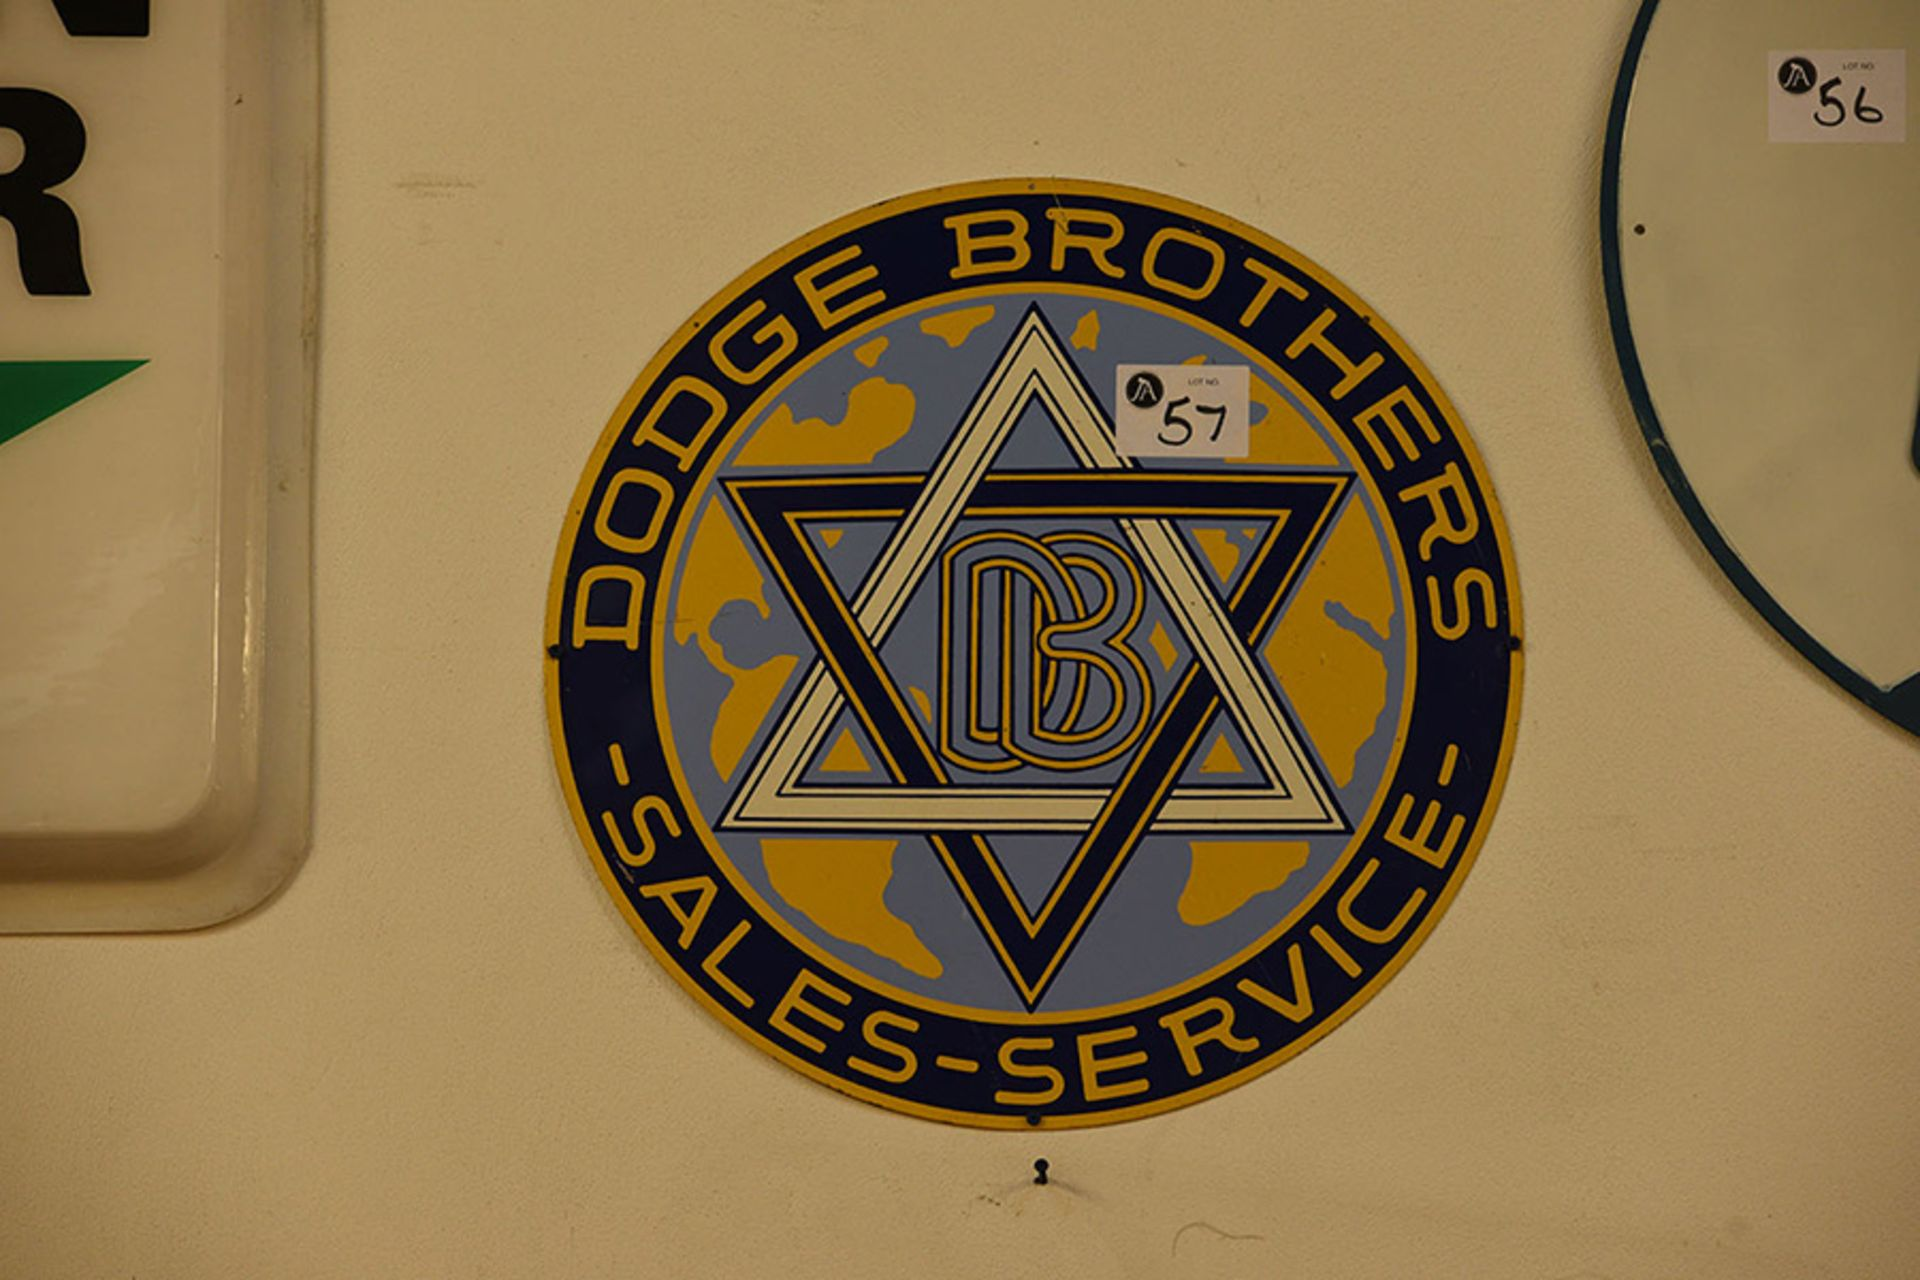 Lot 57 - Dodge Brothers Metal Wall Sign